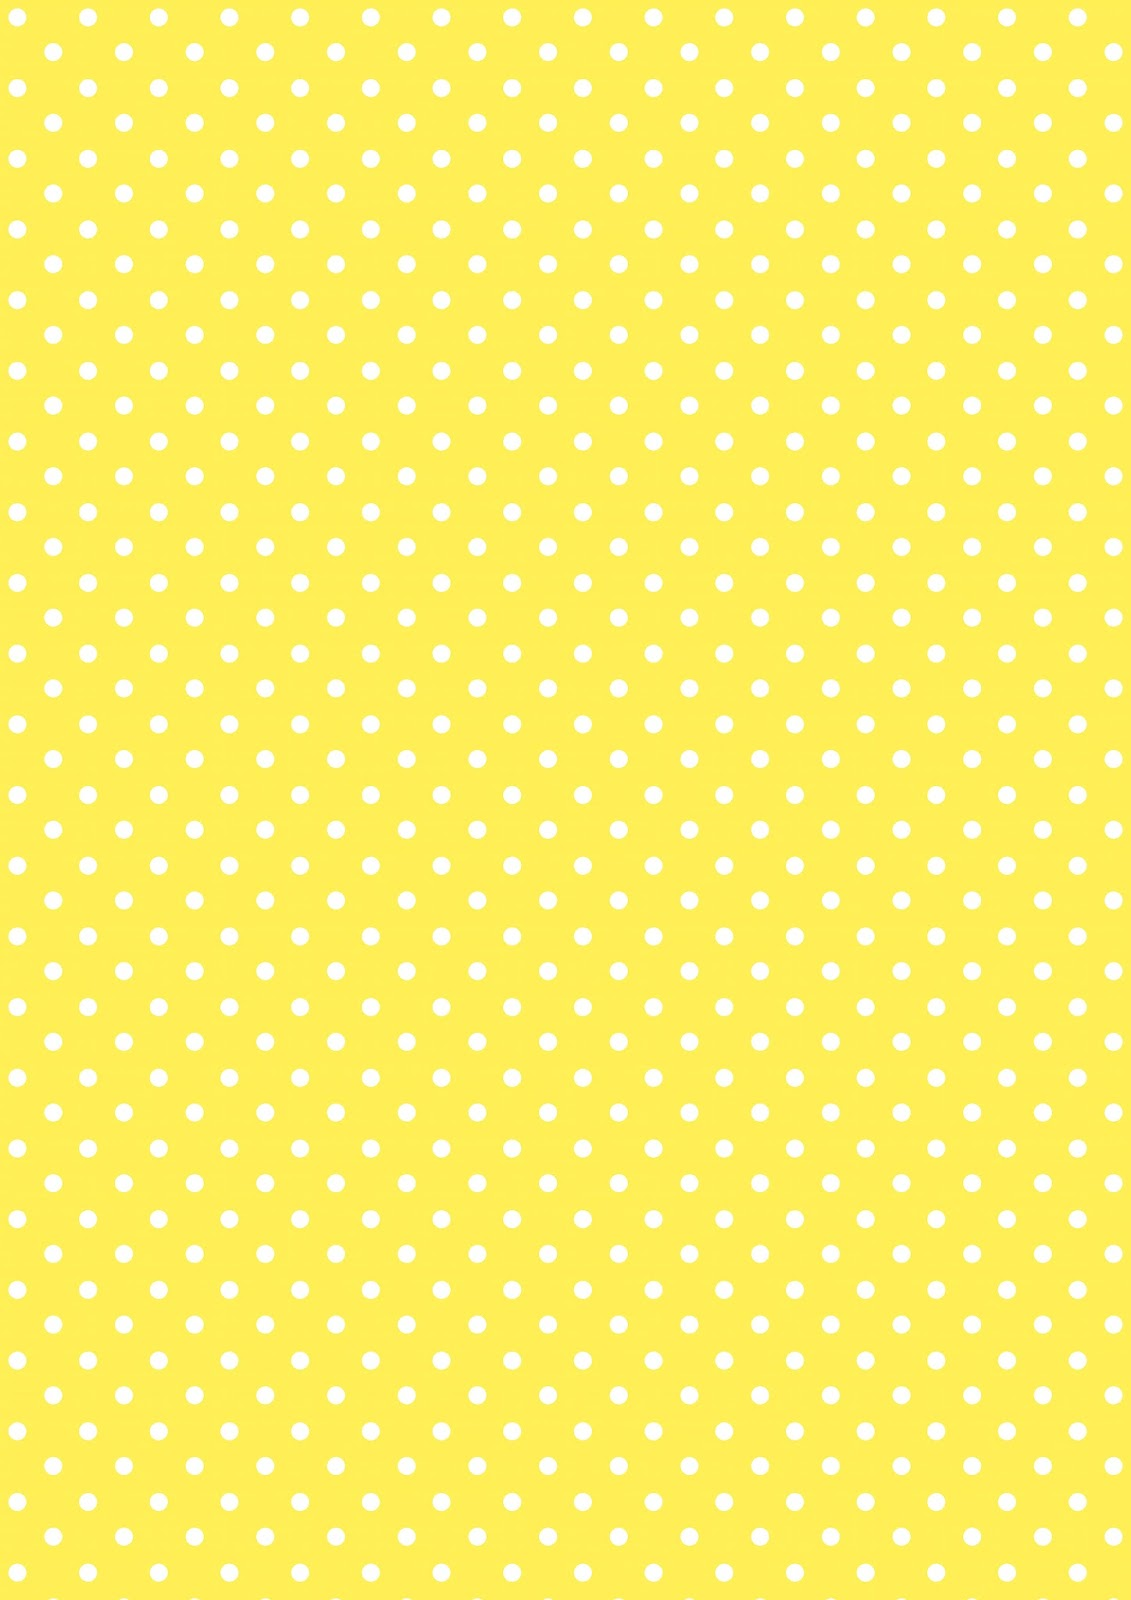 accafffacebbdf-yellow-wallpaper-wp5001125